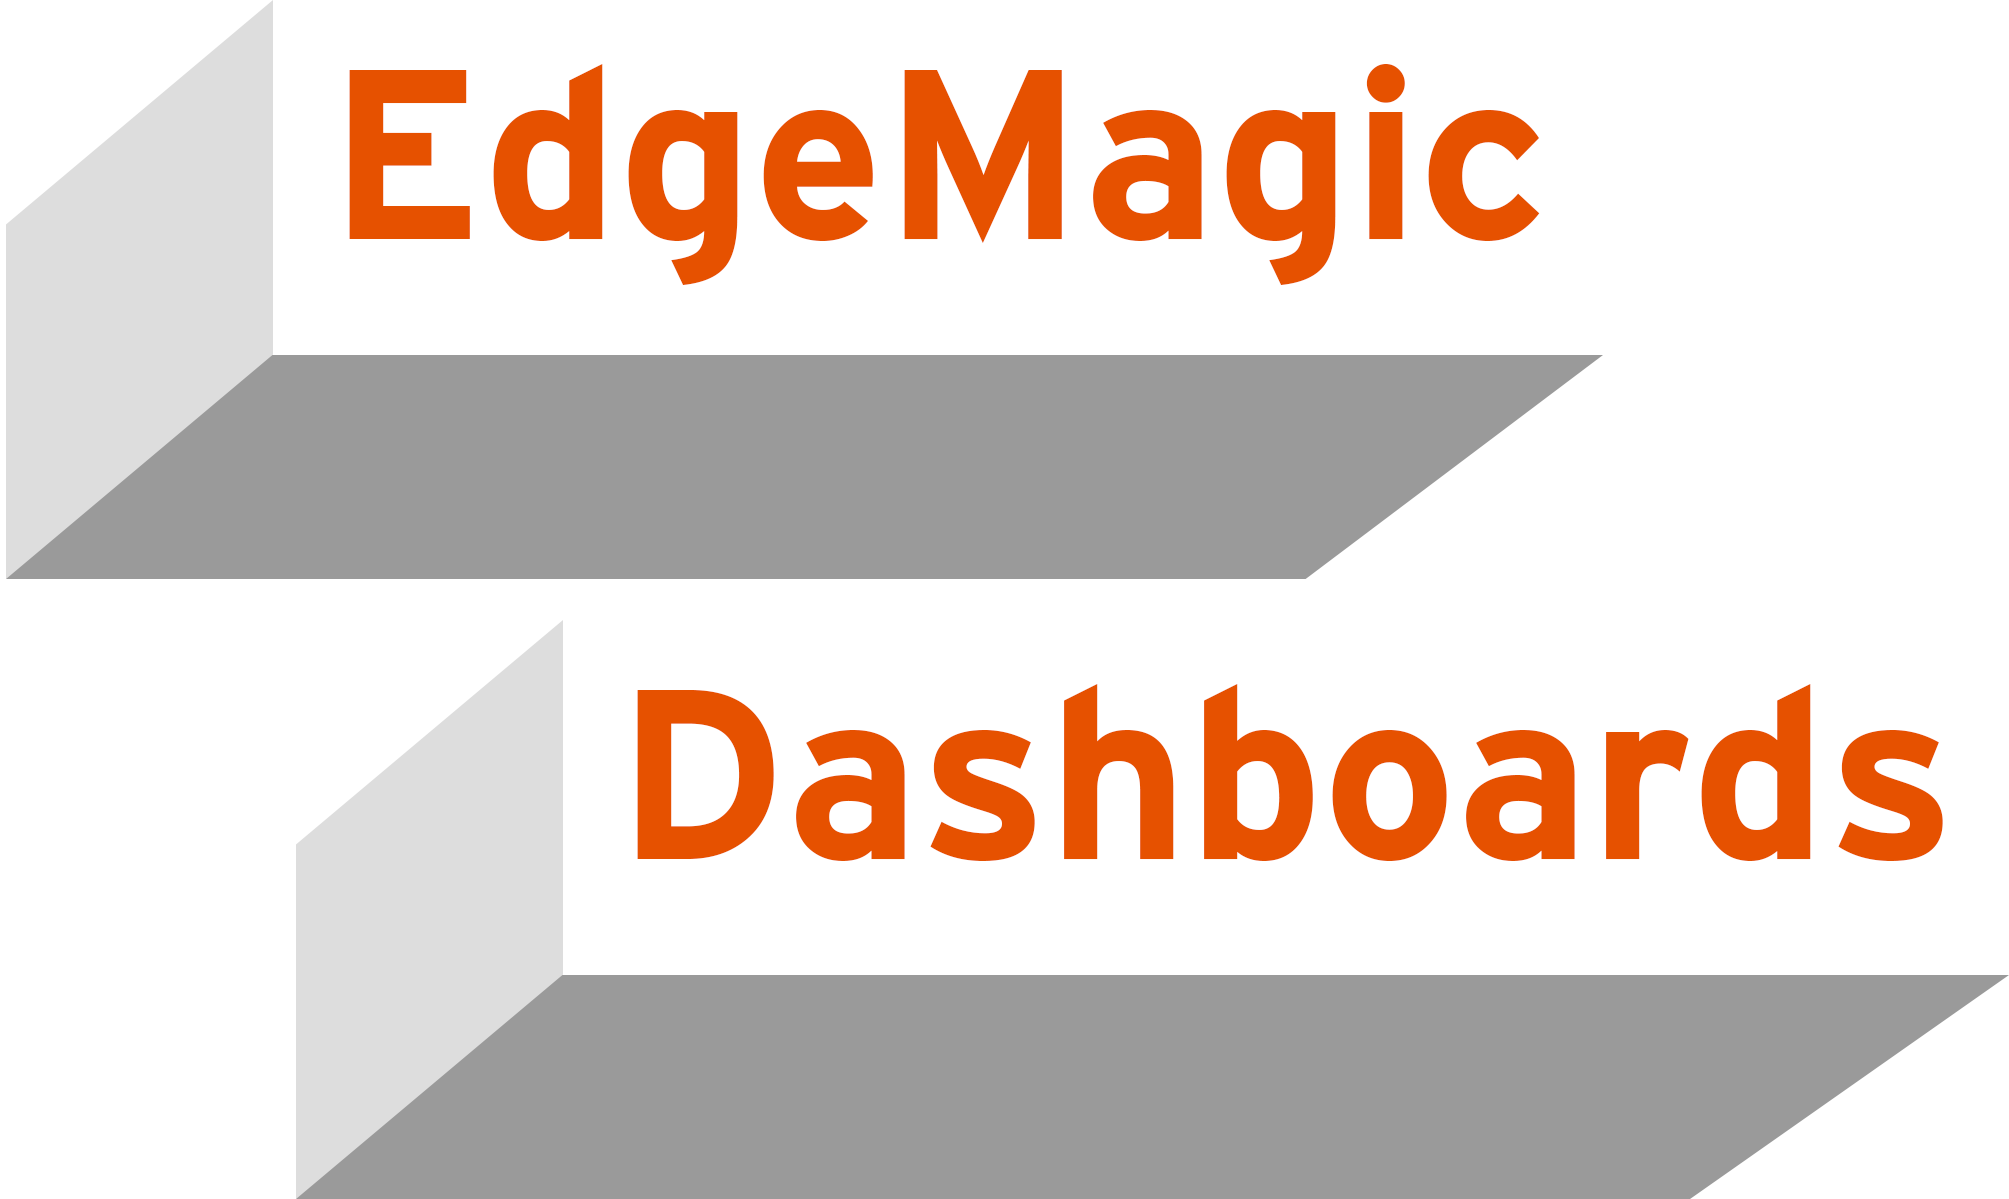 EdgeMagic dashboards help manufacturing warehouses visualize their RFID data.